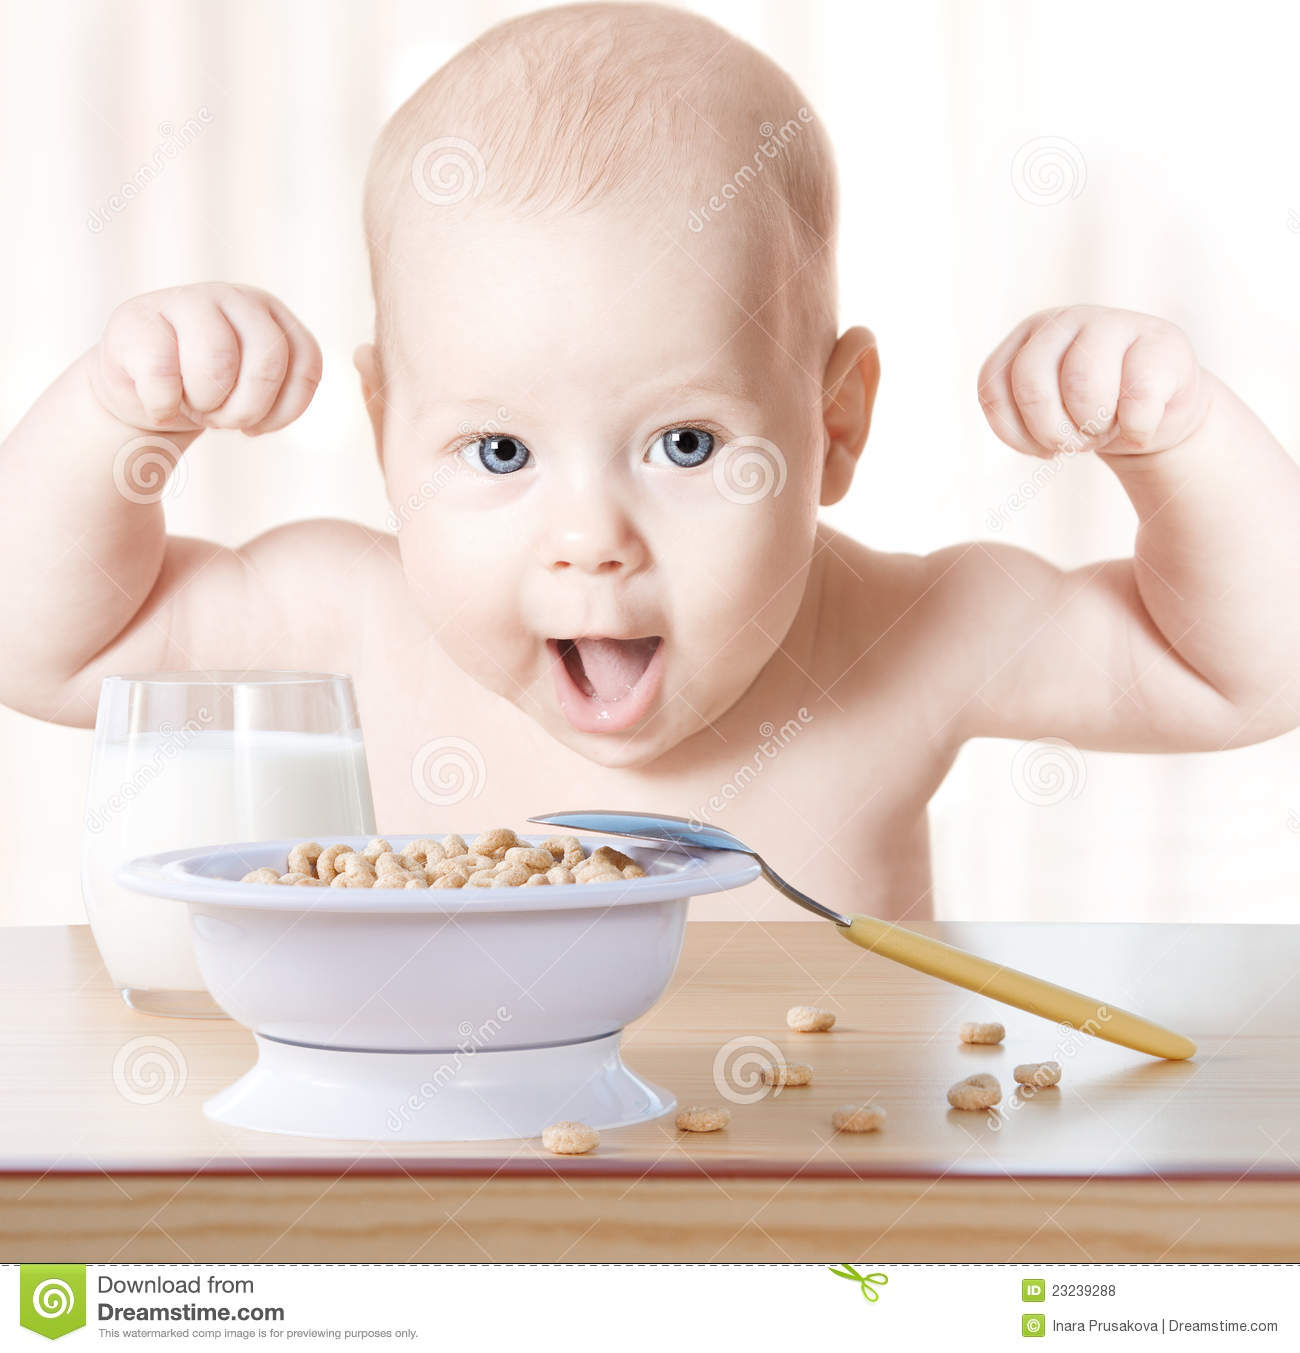 production plan for baby food in Baby food manufacturing: how to start a baby food production business 10:38:00 am food , home products & services , manufacturing , wholesale & retail 3 comments baby food business is one of the most challenging enterprises to start.